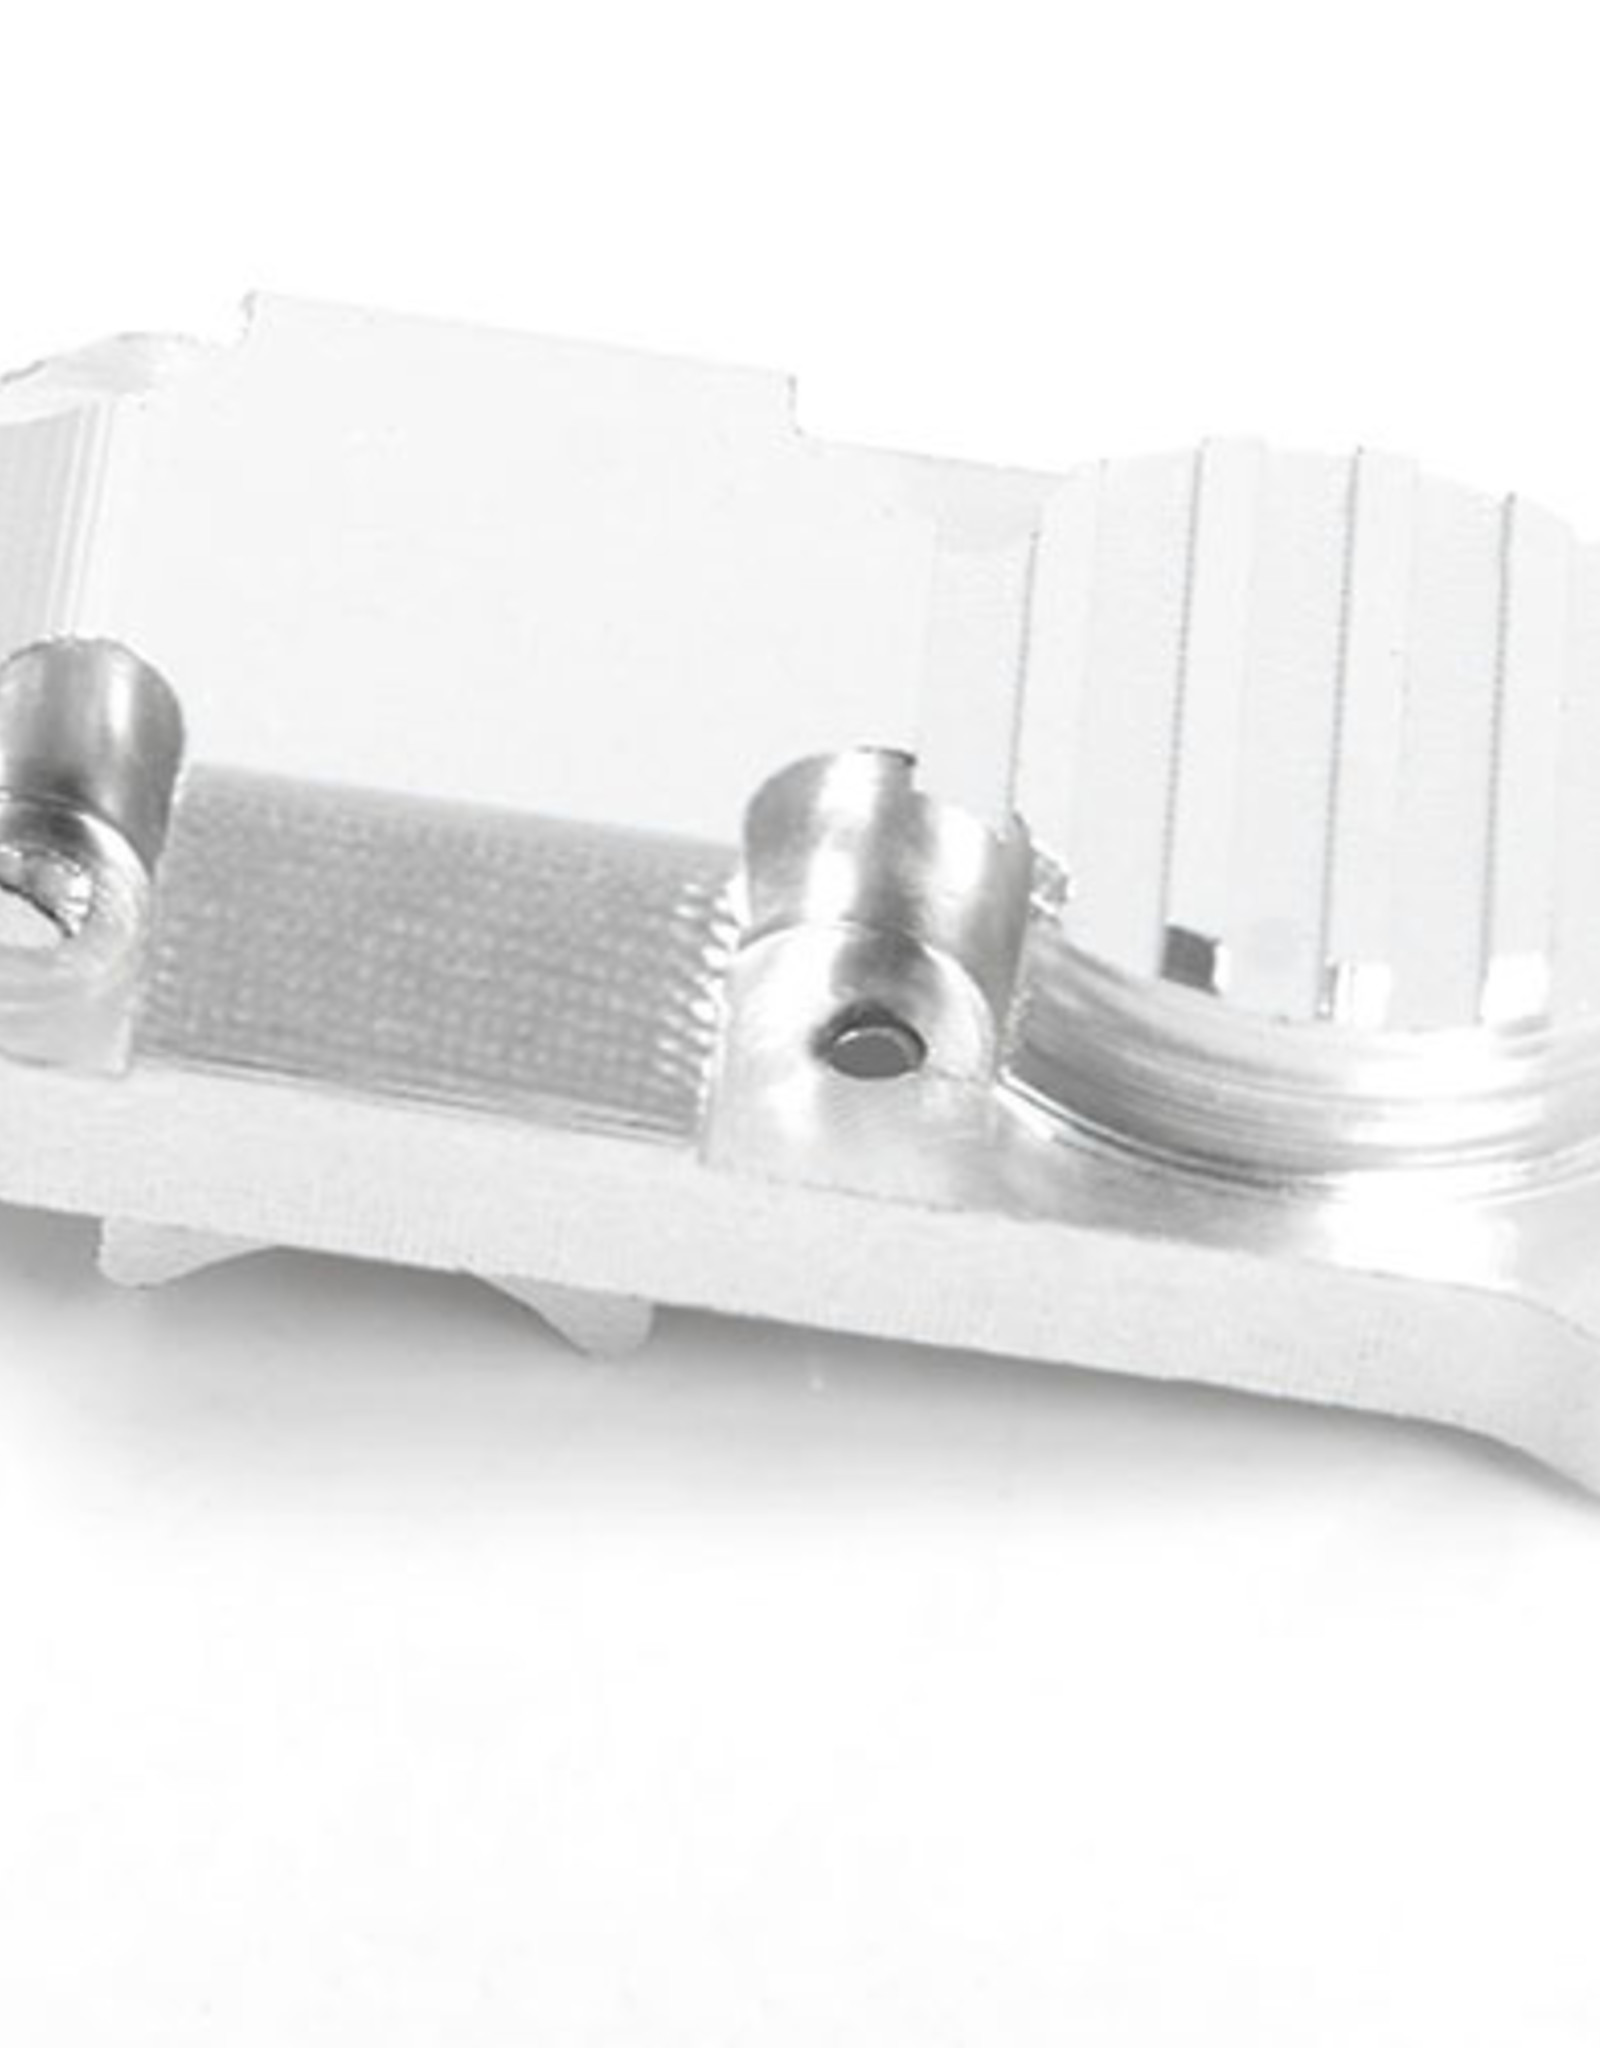 RC4WD RC4WD Micro Series Diff Cover for Axial SCX24 1/24 RTR (Silver)